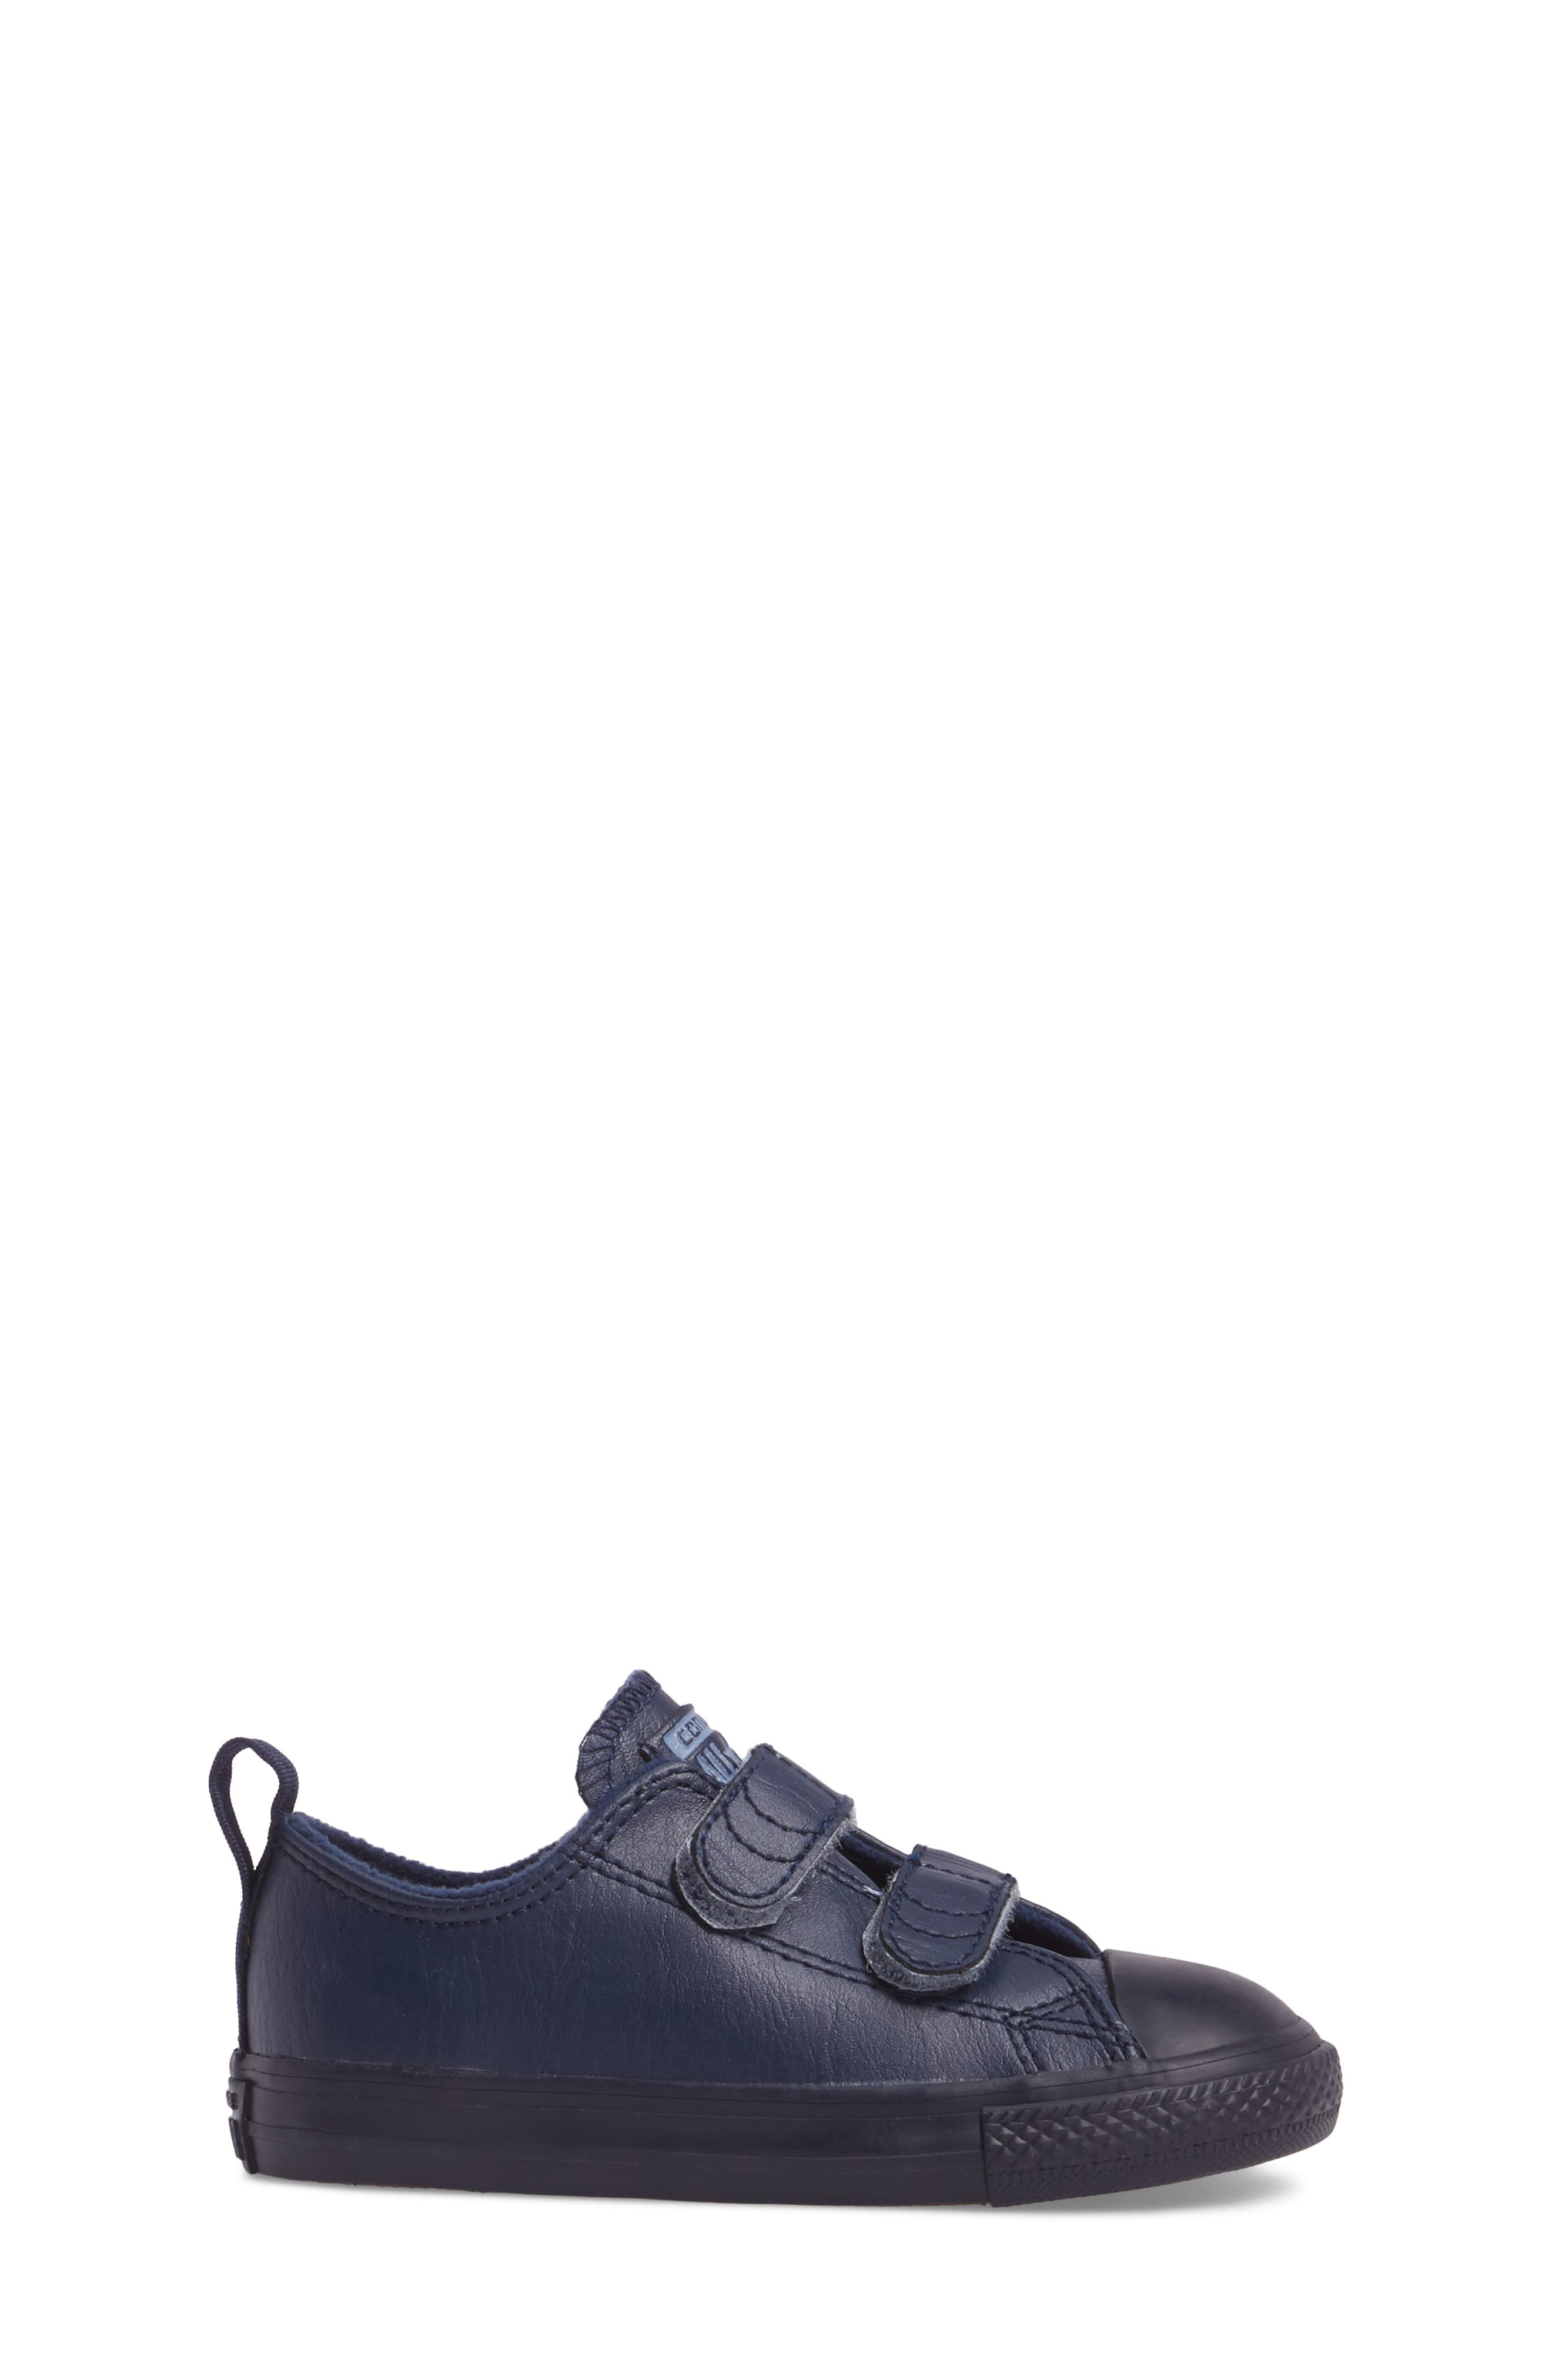 Chuck Taylor<sup>®</sup> All Star<sup>®</sup> 2V Low Top Sneaker,                             Alternate thumbnail 3, color,                             Midnight Leather